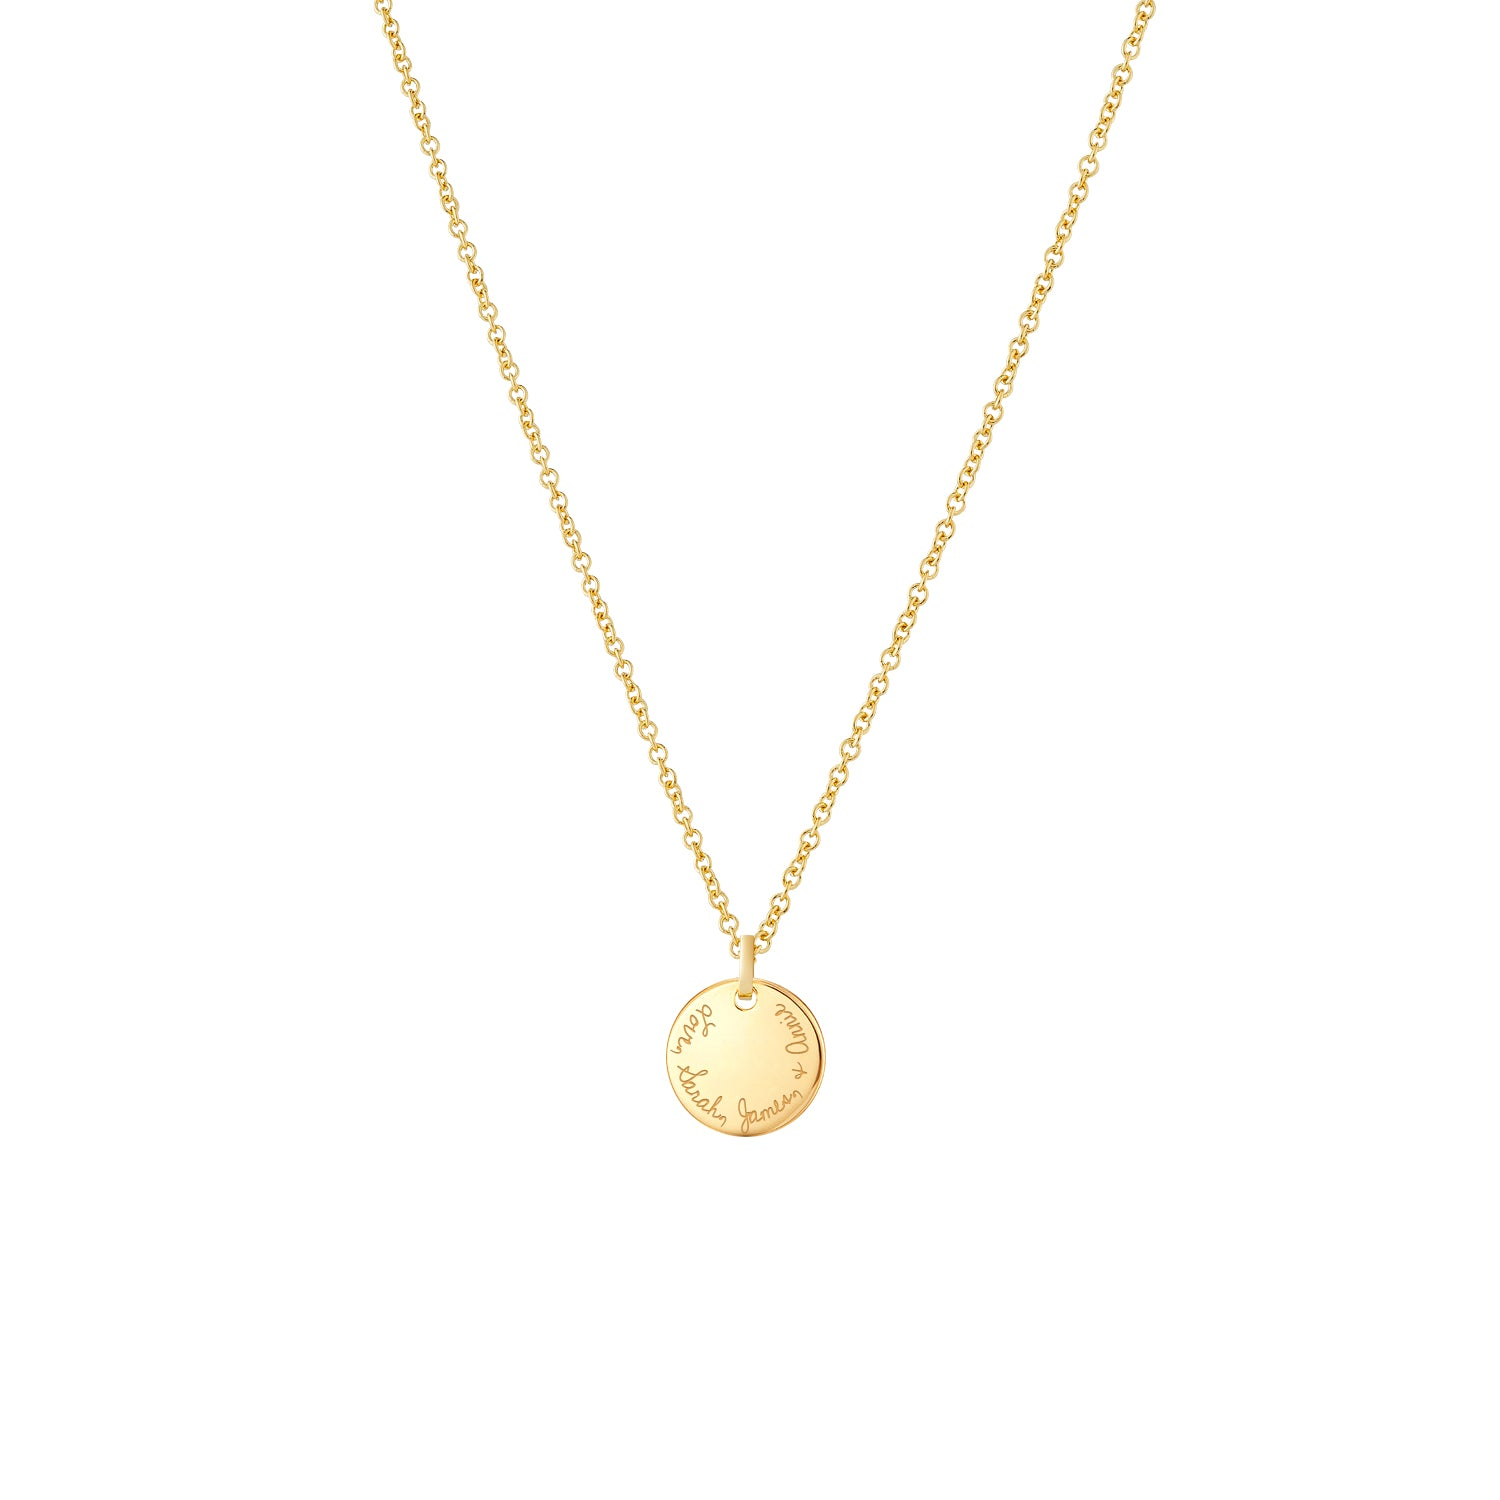 Hand Engraved 14k Gold Disc Necklace